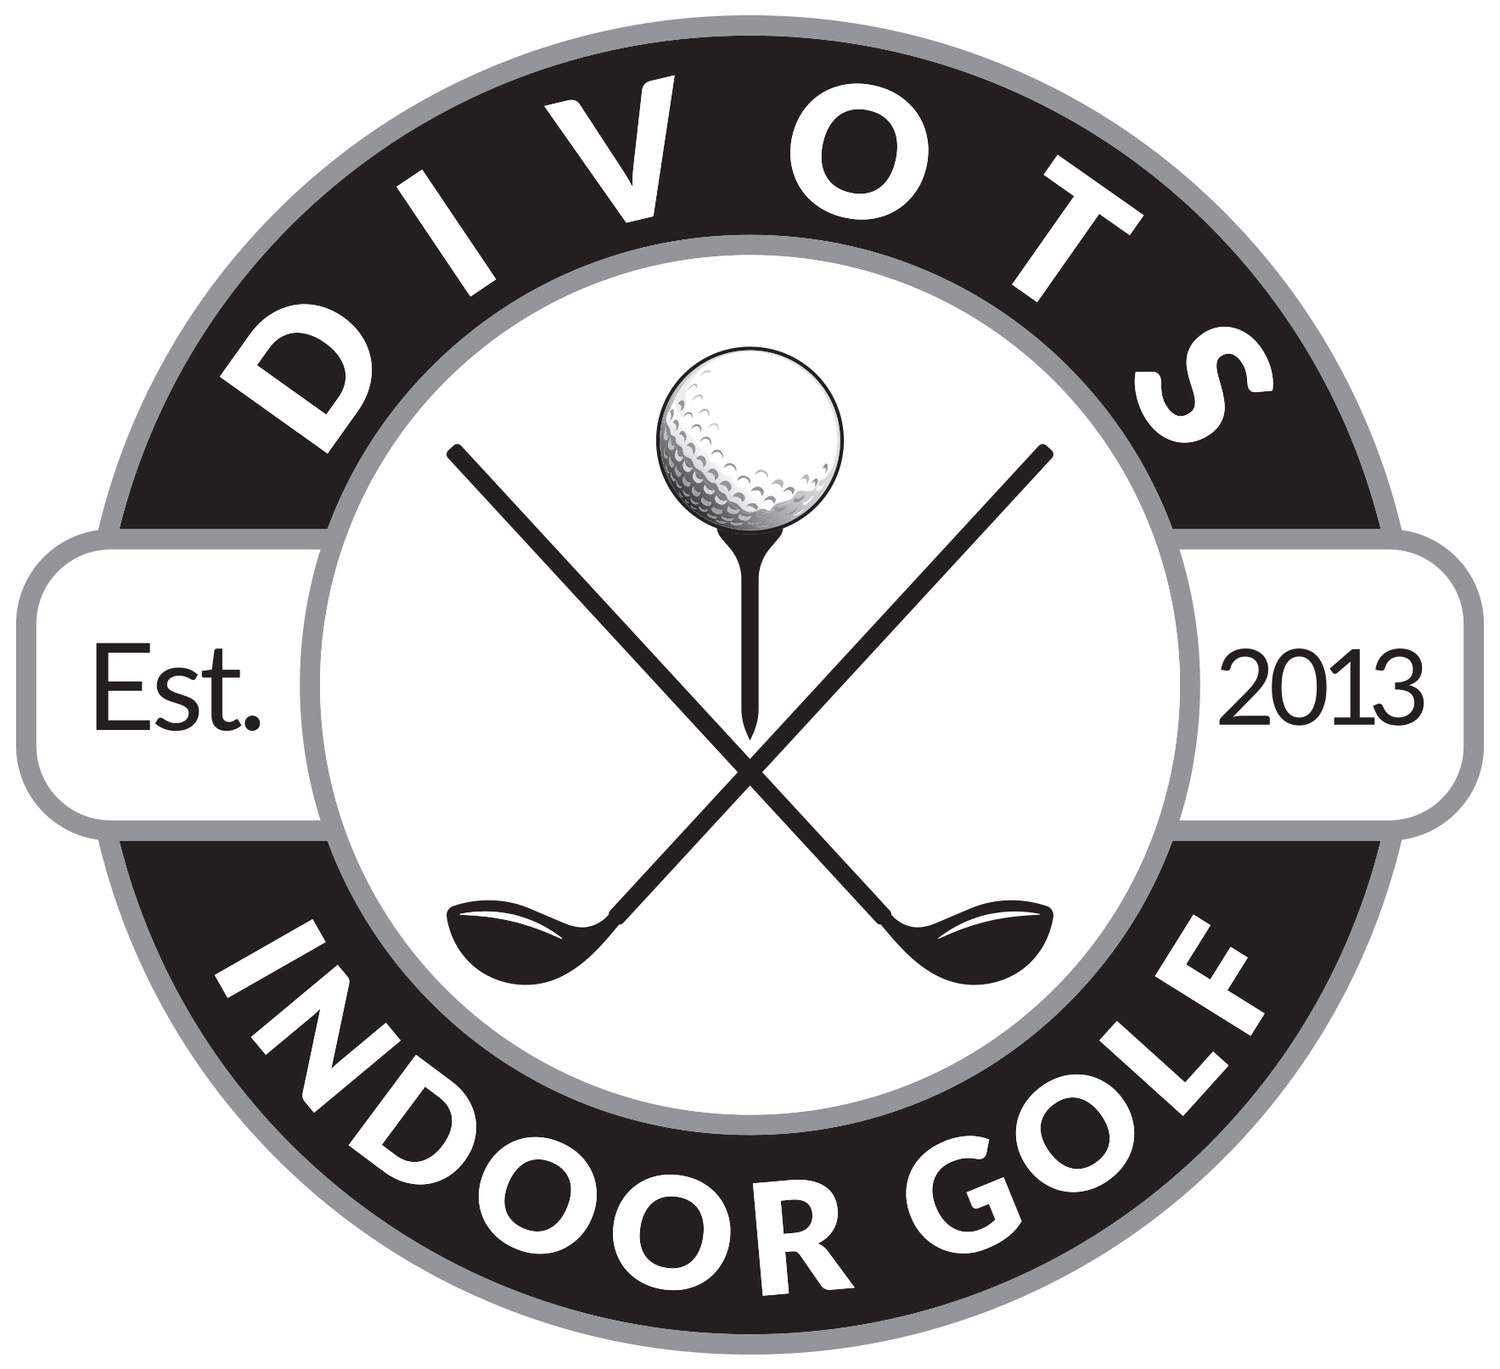 Divots Indoor Golf